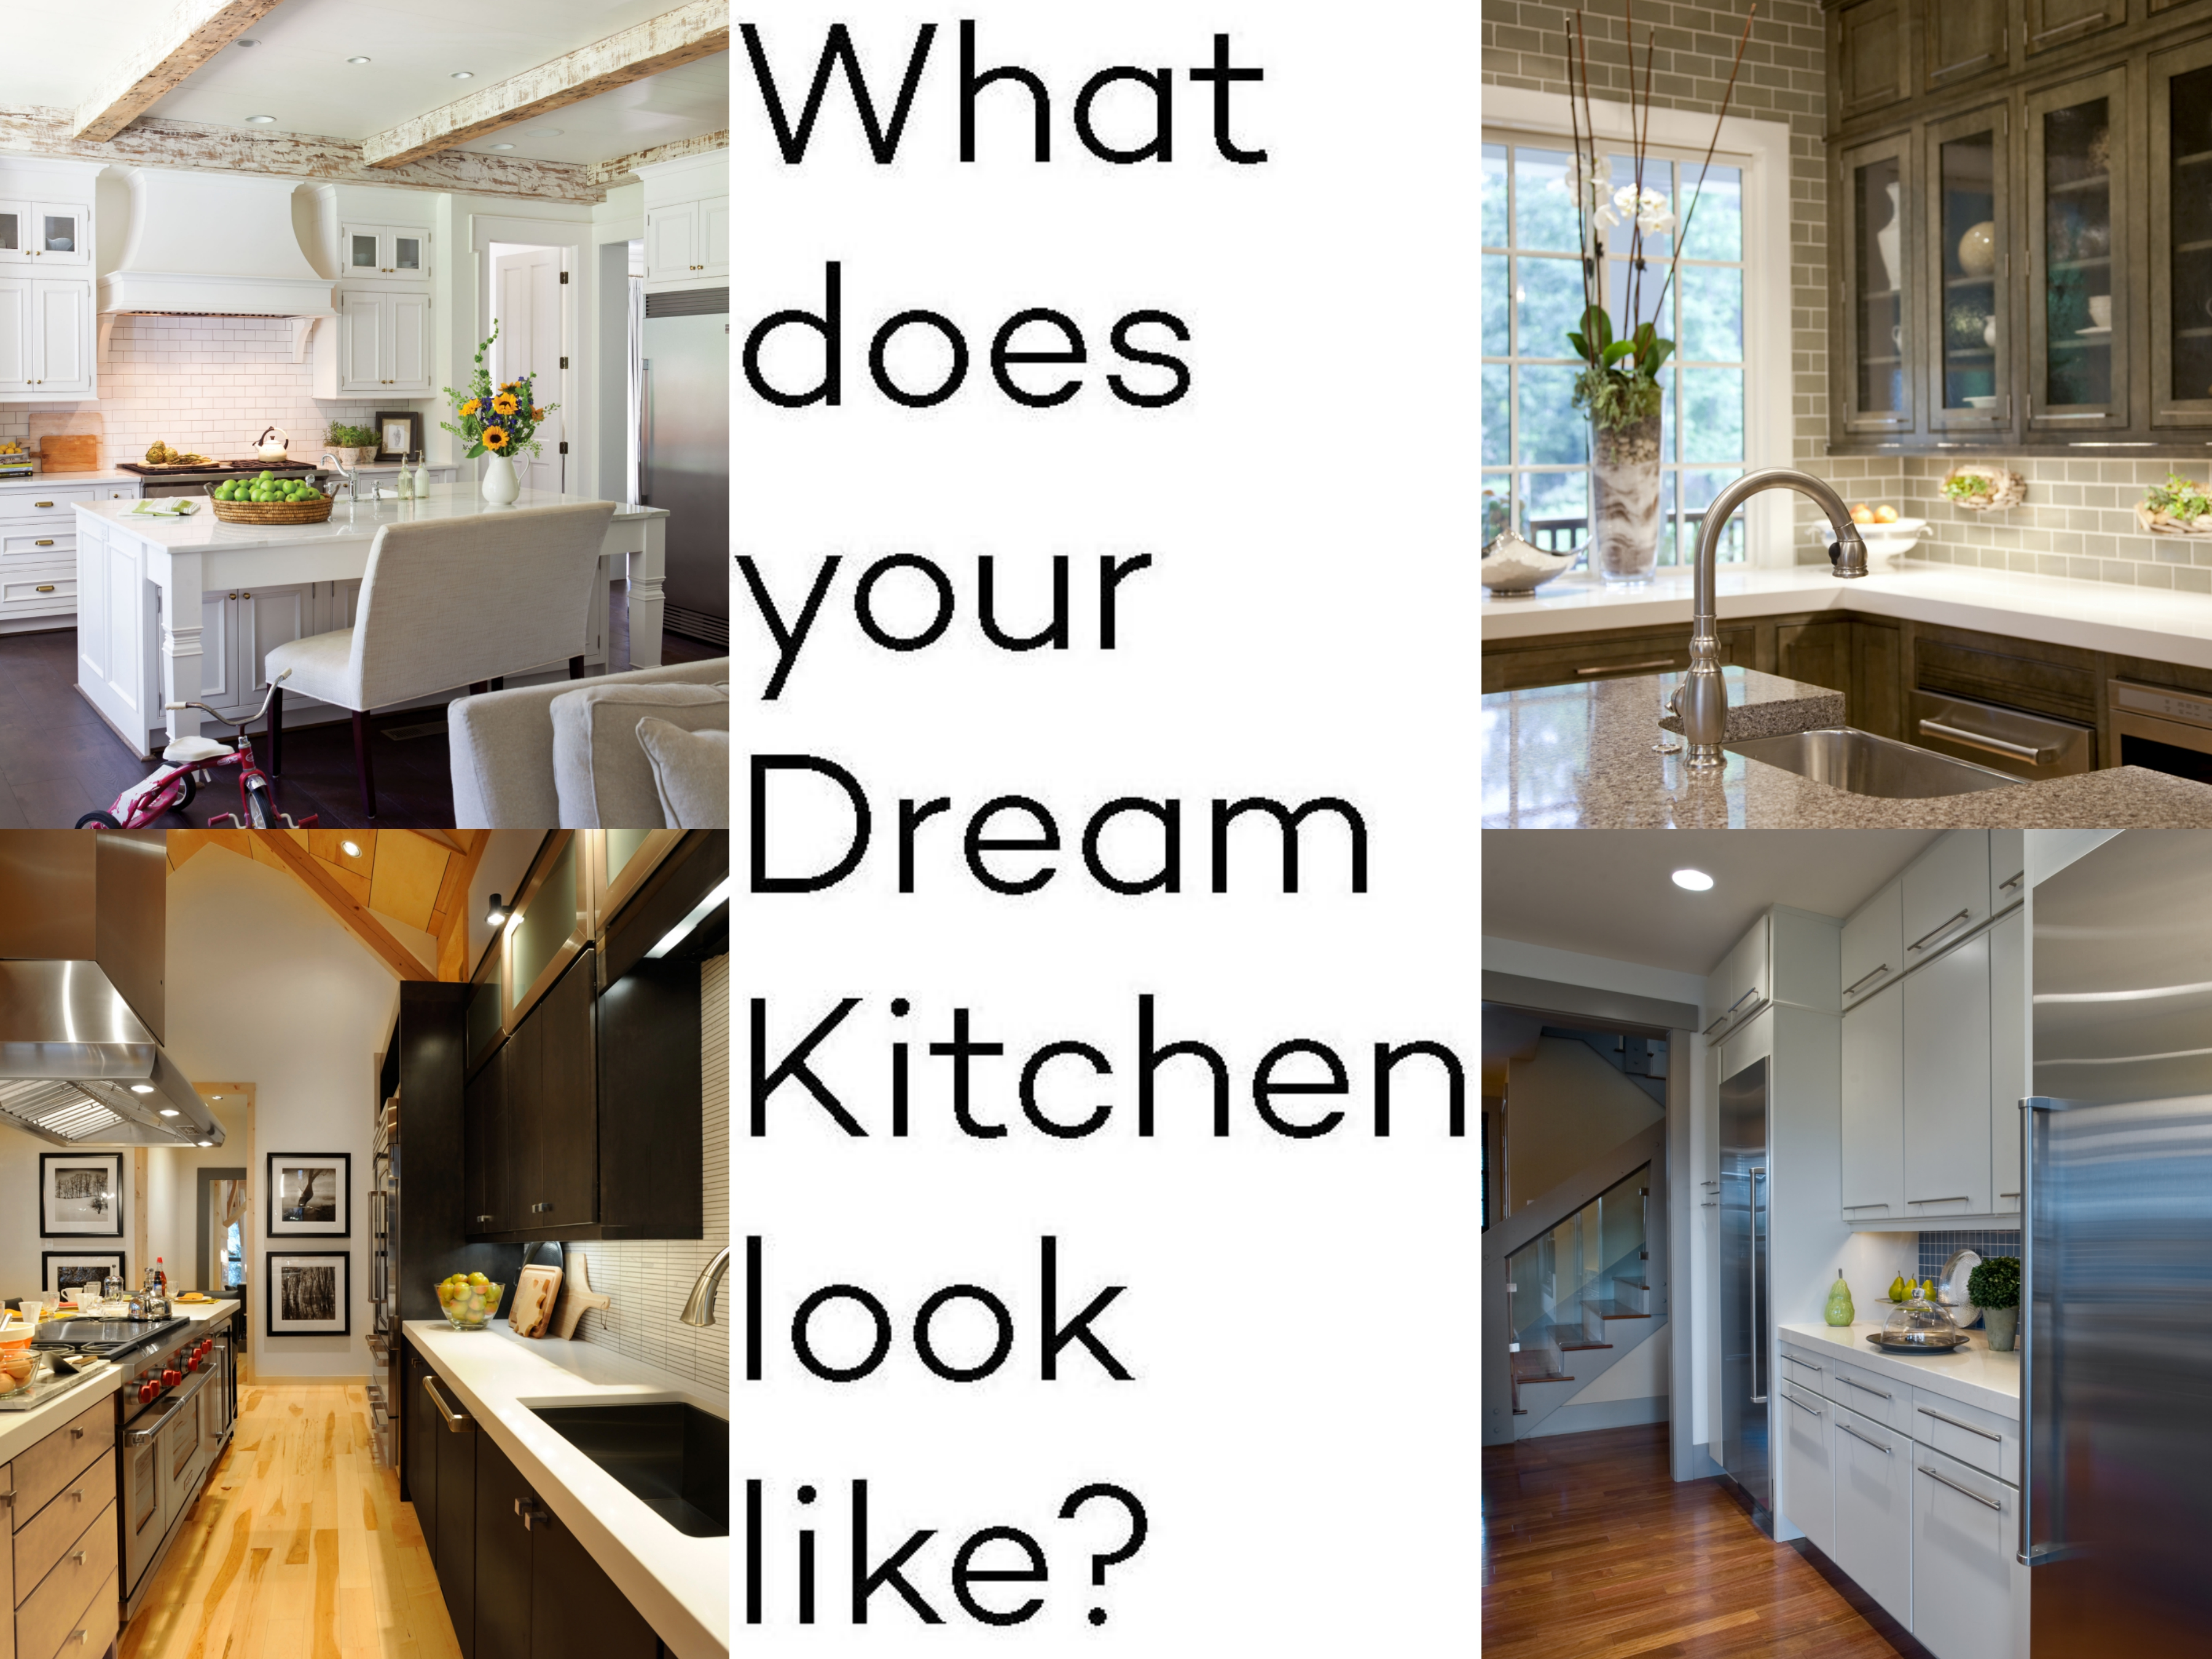 Dream Kitchen Makeover Contest - 11 days left to enter